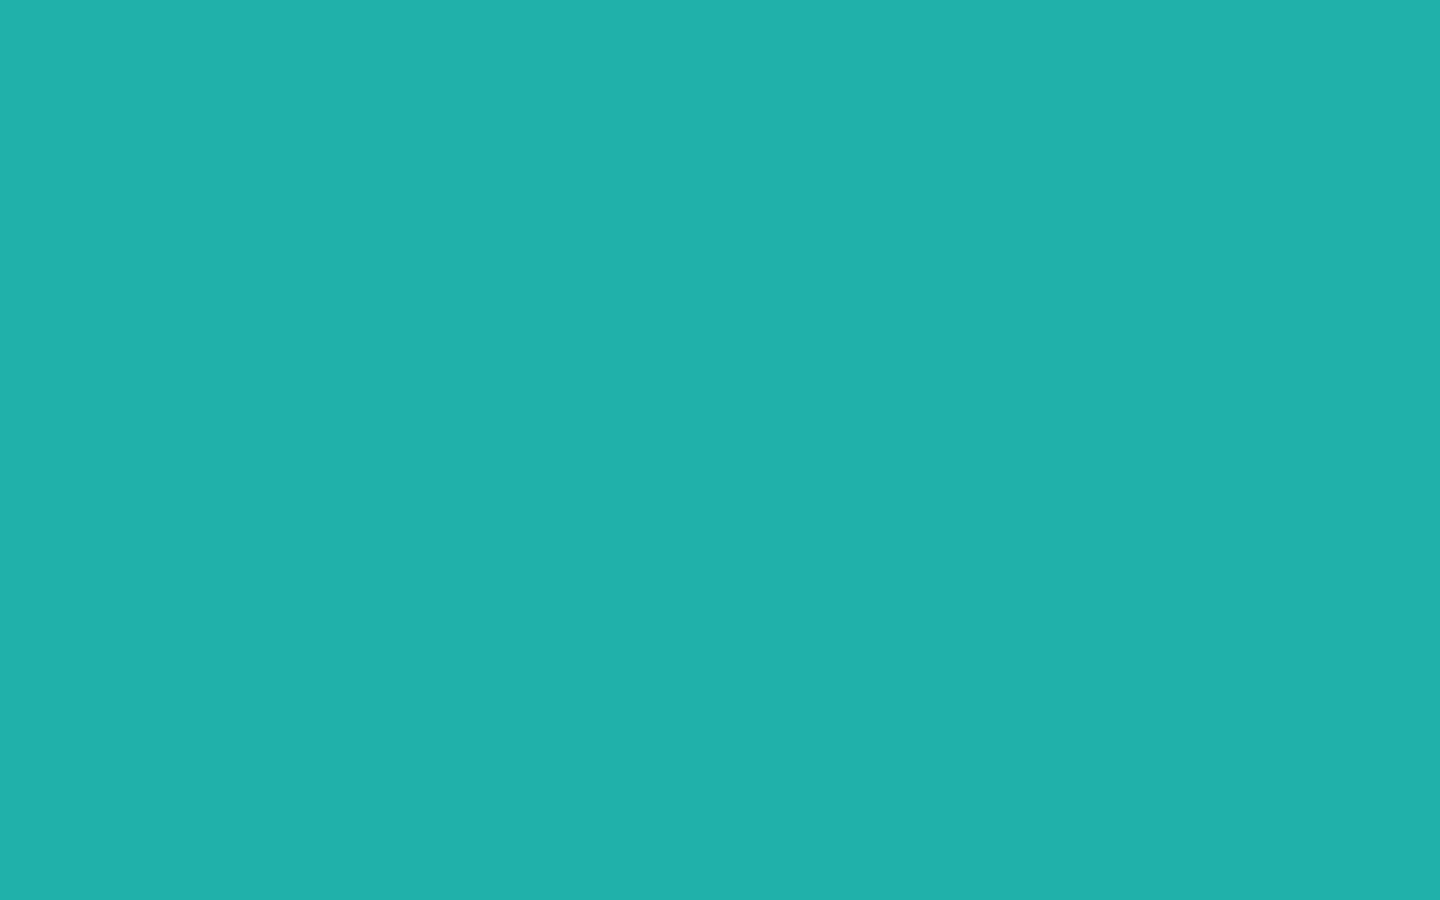 1440x900 Light Sea Green Solid Color Background